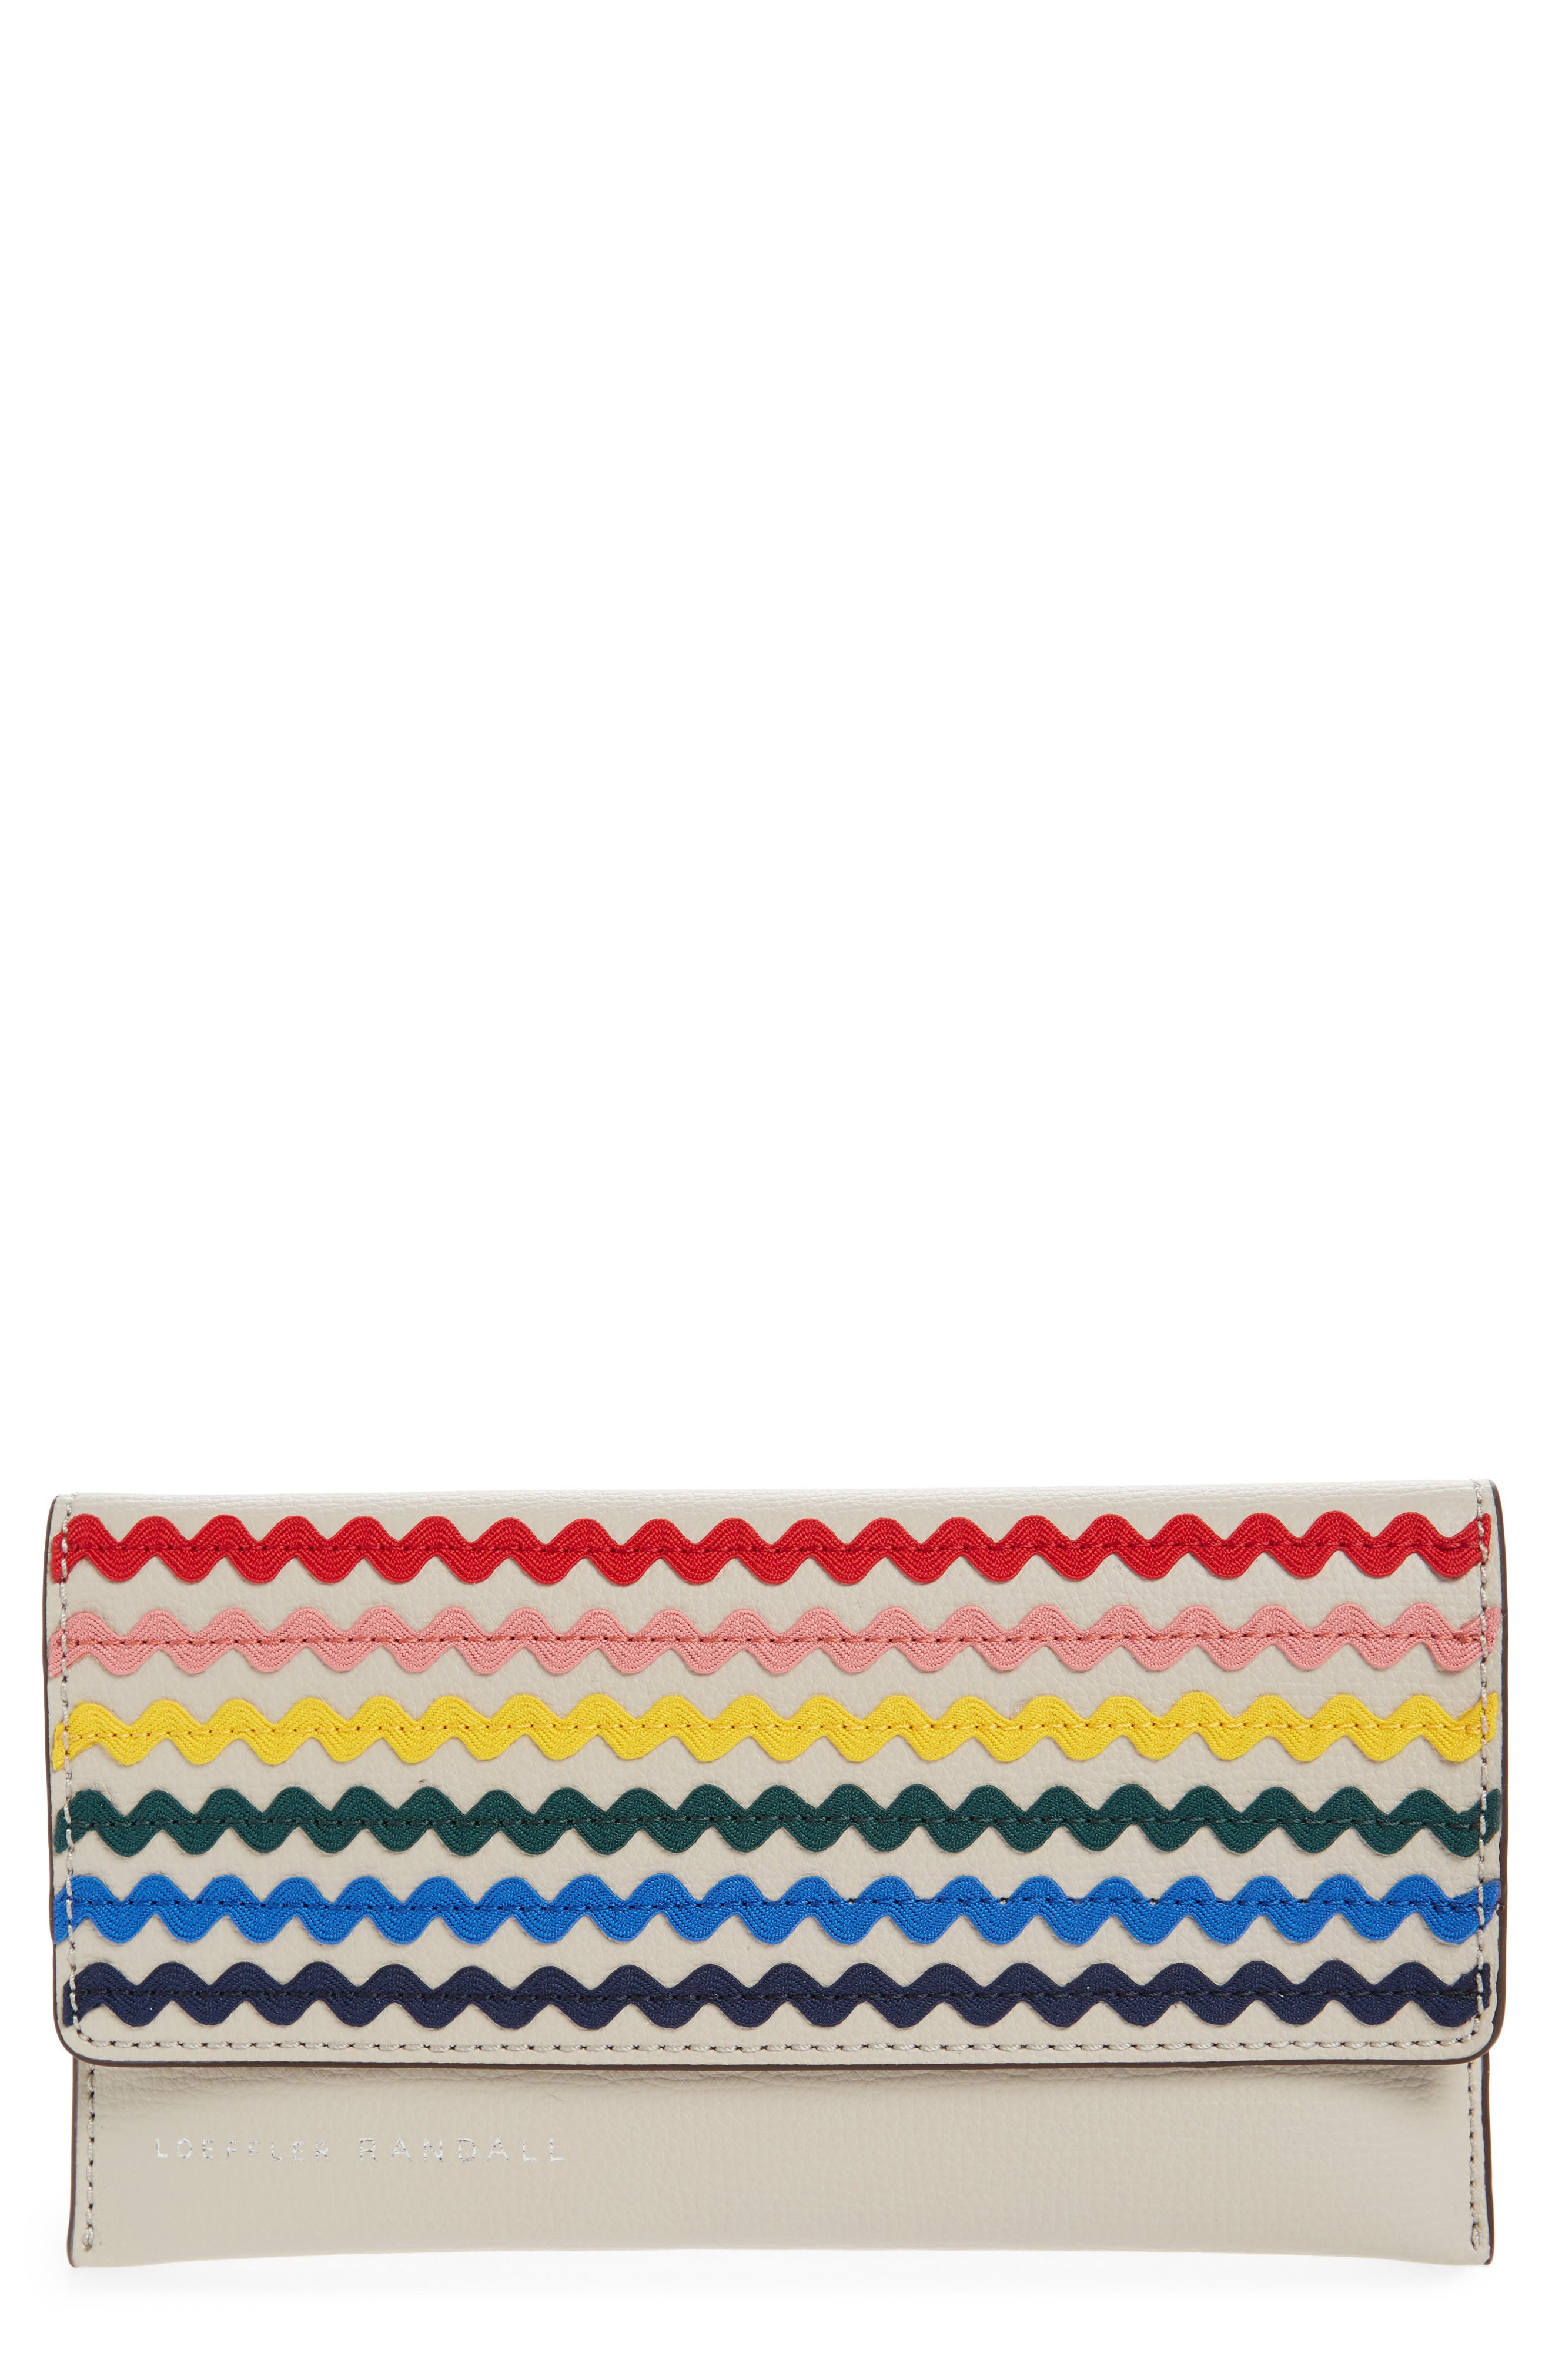 Everything Embellished Leather Wallet,                         Main,                         color,